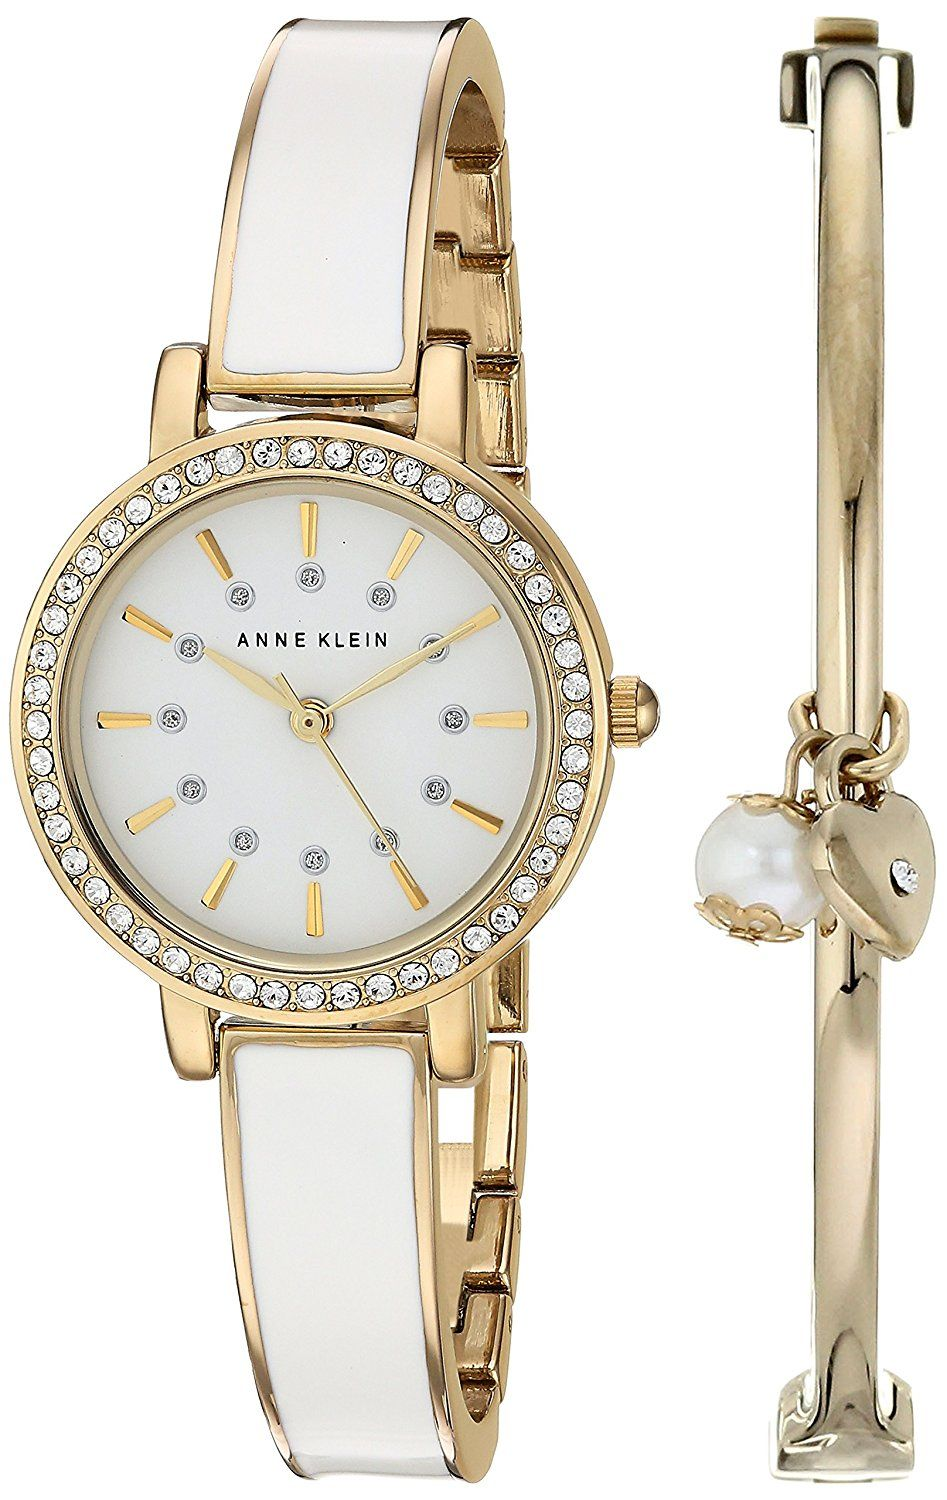 54b68eaa8873 Anne Klein Women s AK 2364WTST Swarovski Crystal Accented Gold-Tone and  White Watch and Bangle Set – Investment Shopping